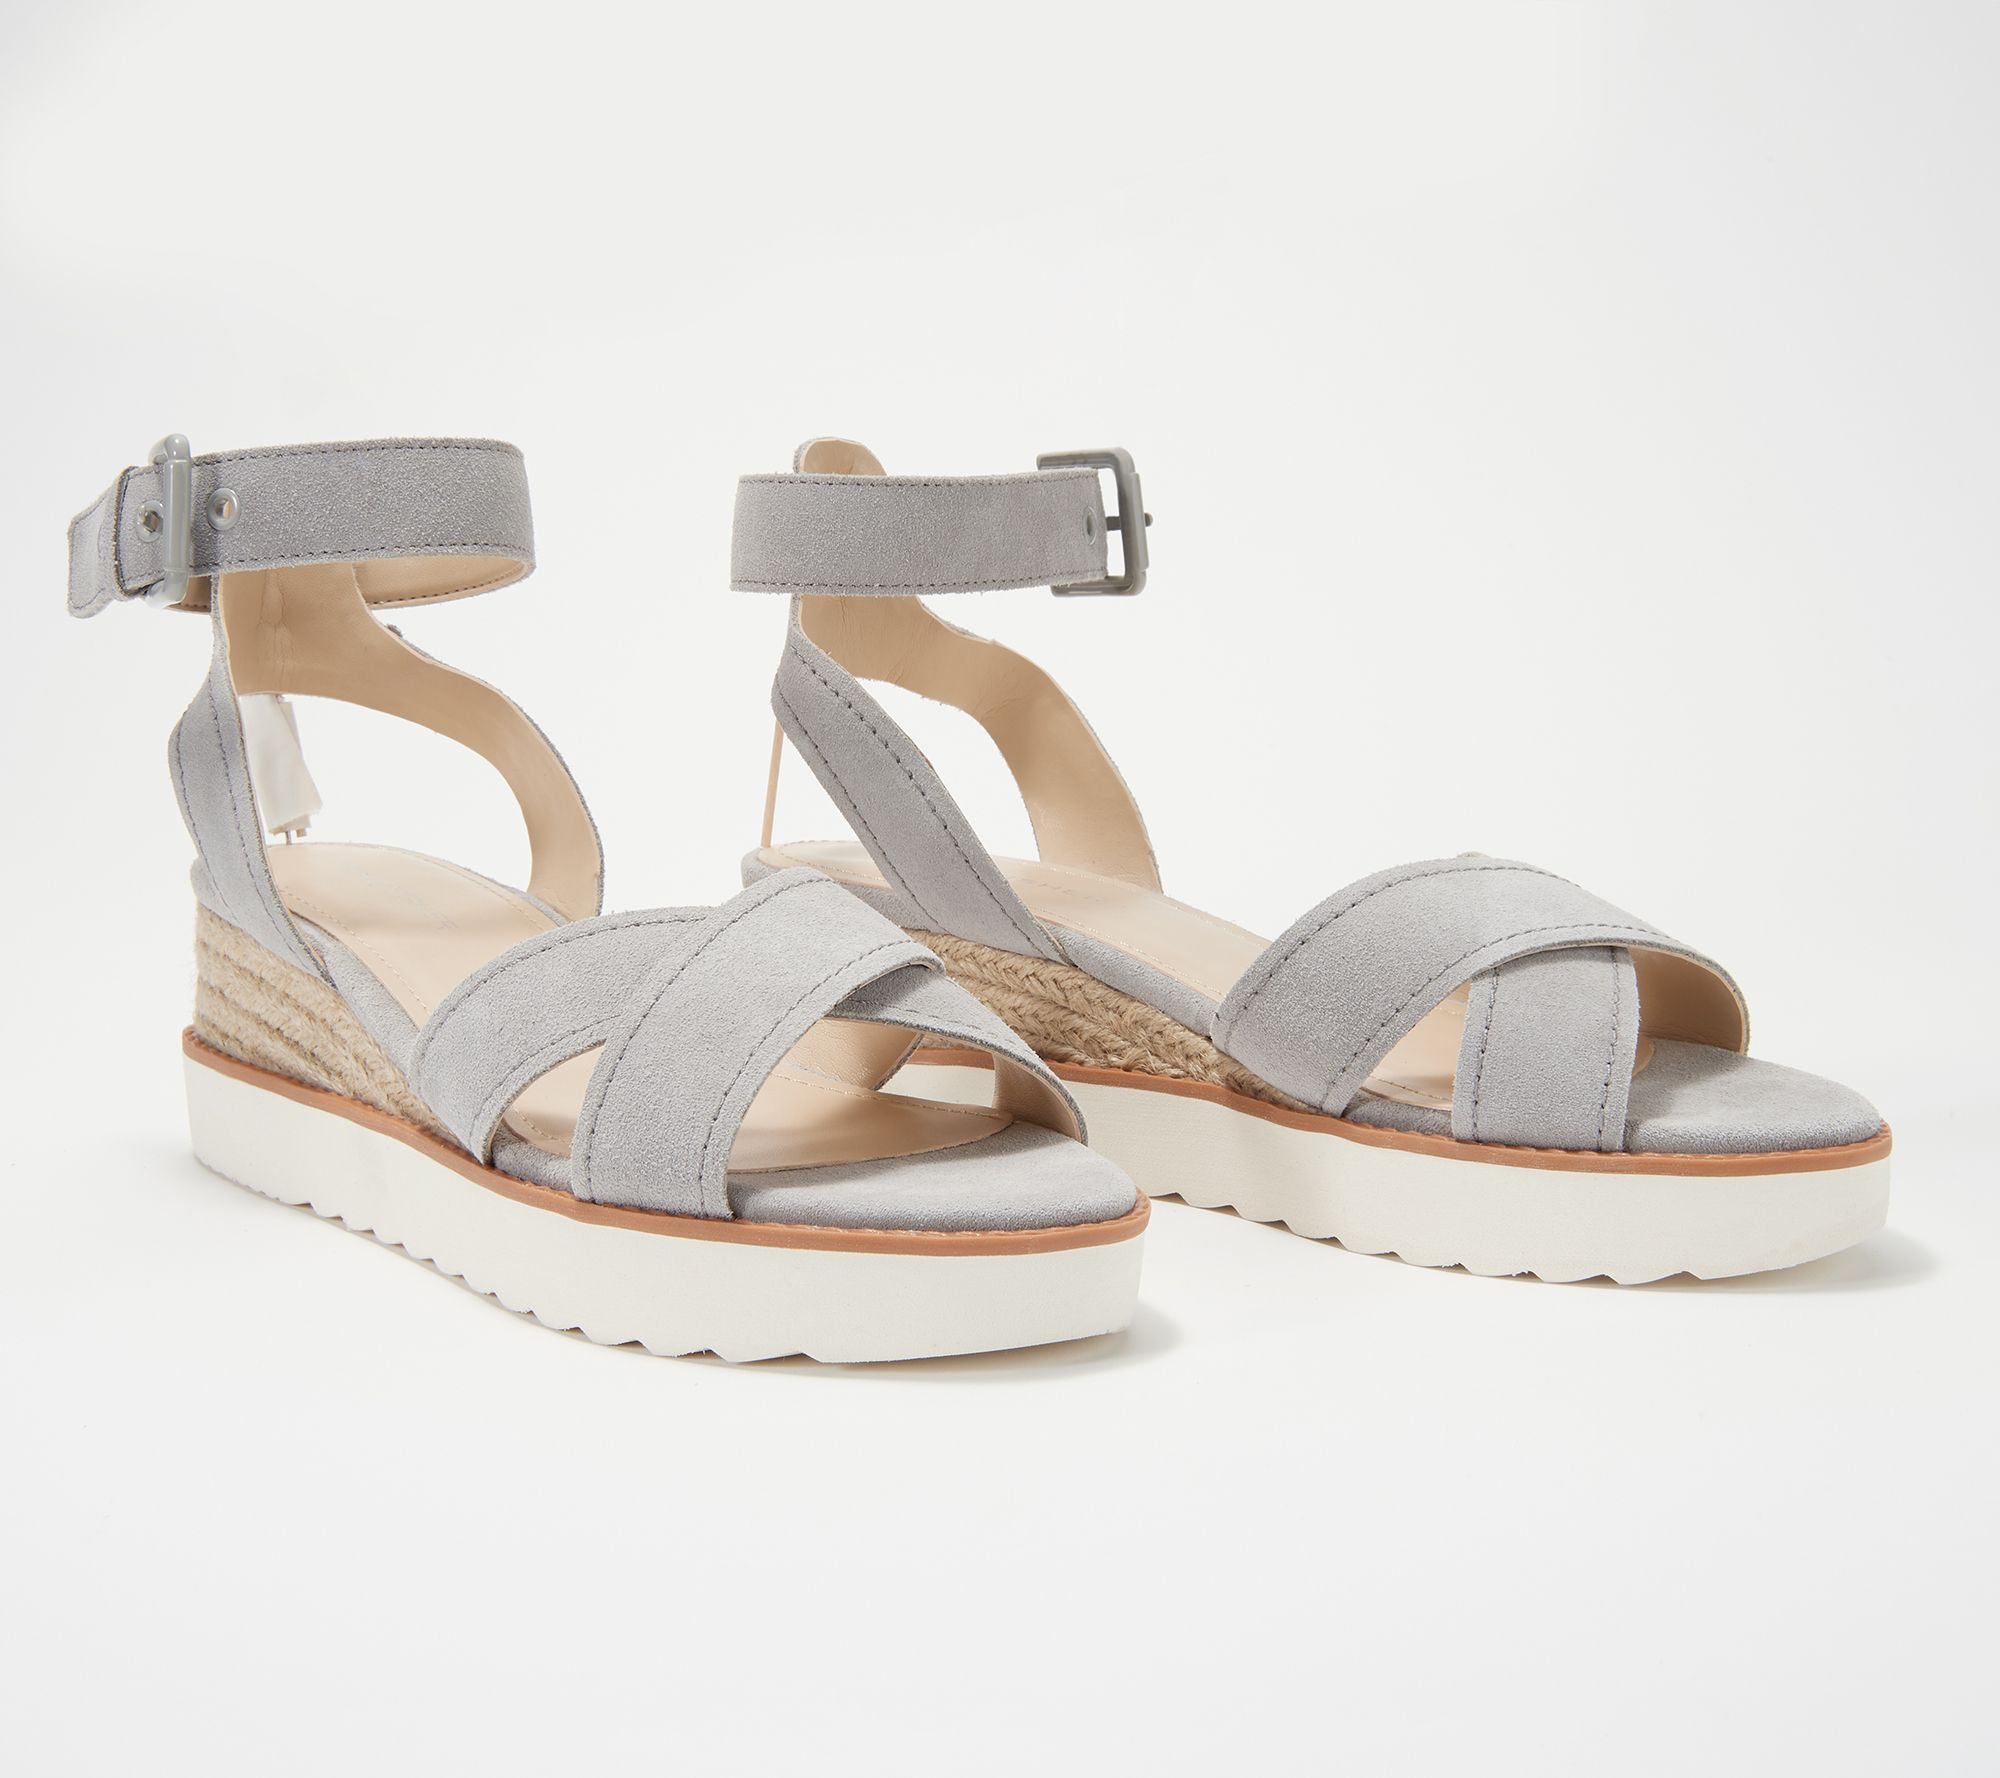 150444fa037fc Marc Fisher Leather or Suede Cross Strap Wedges- Jovana - Page 1 ...